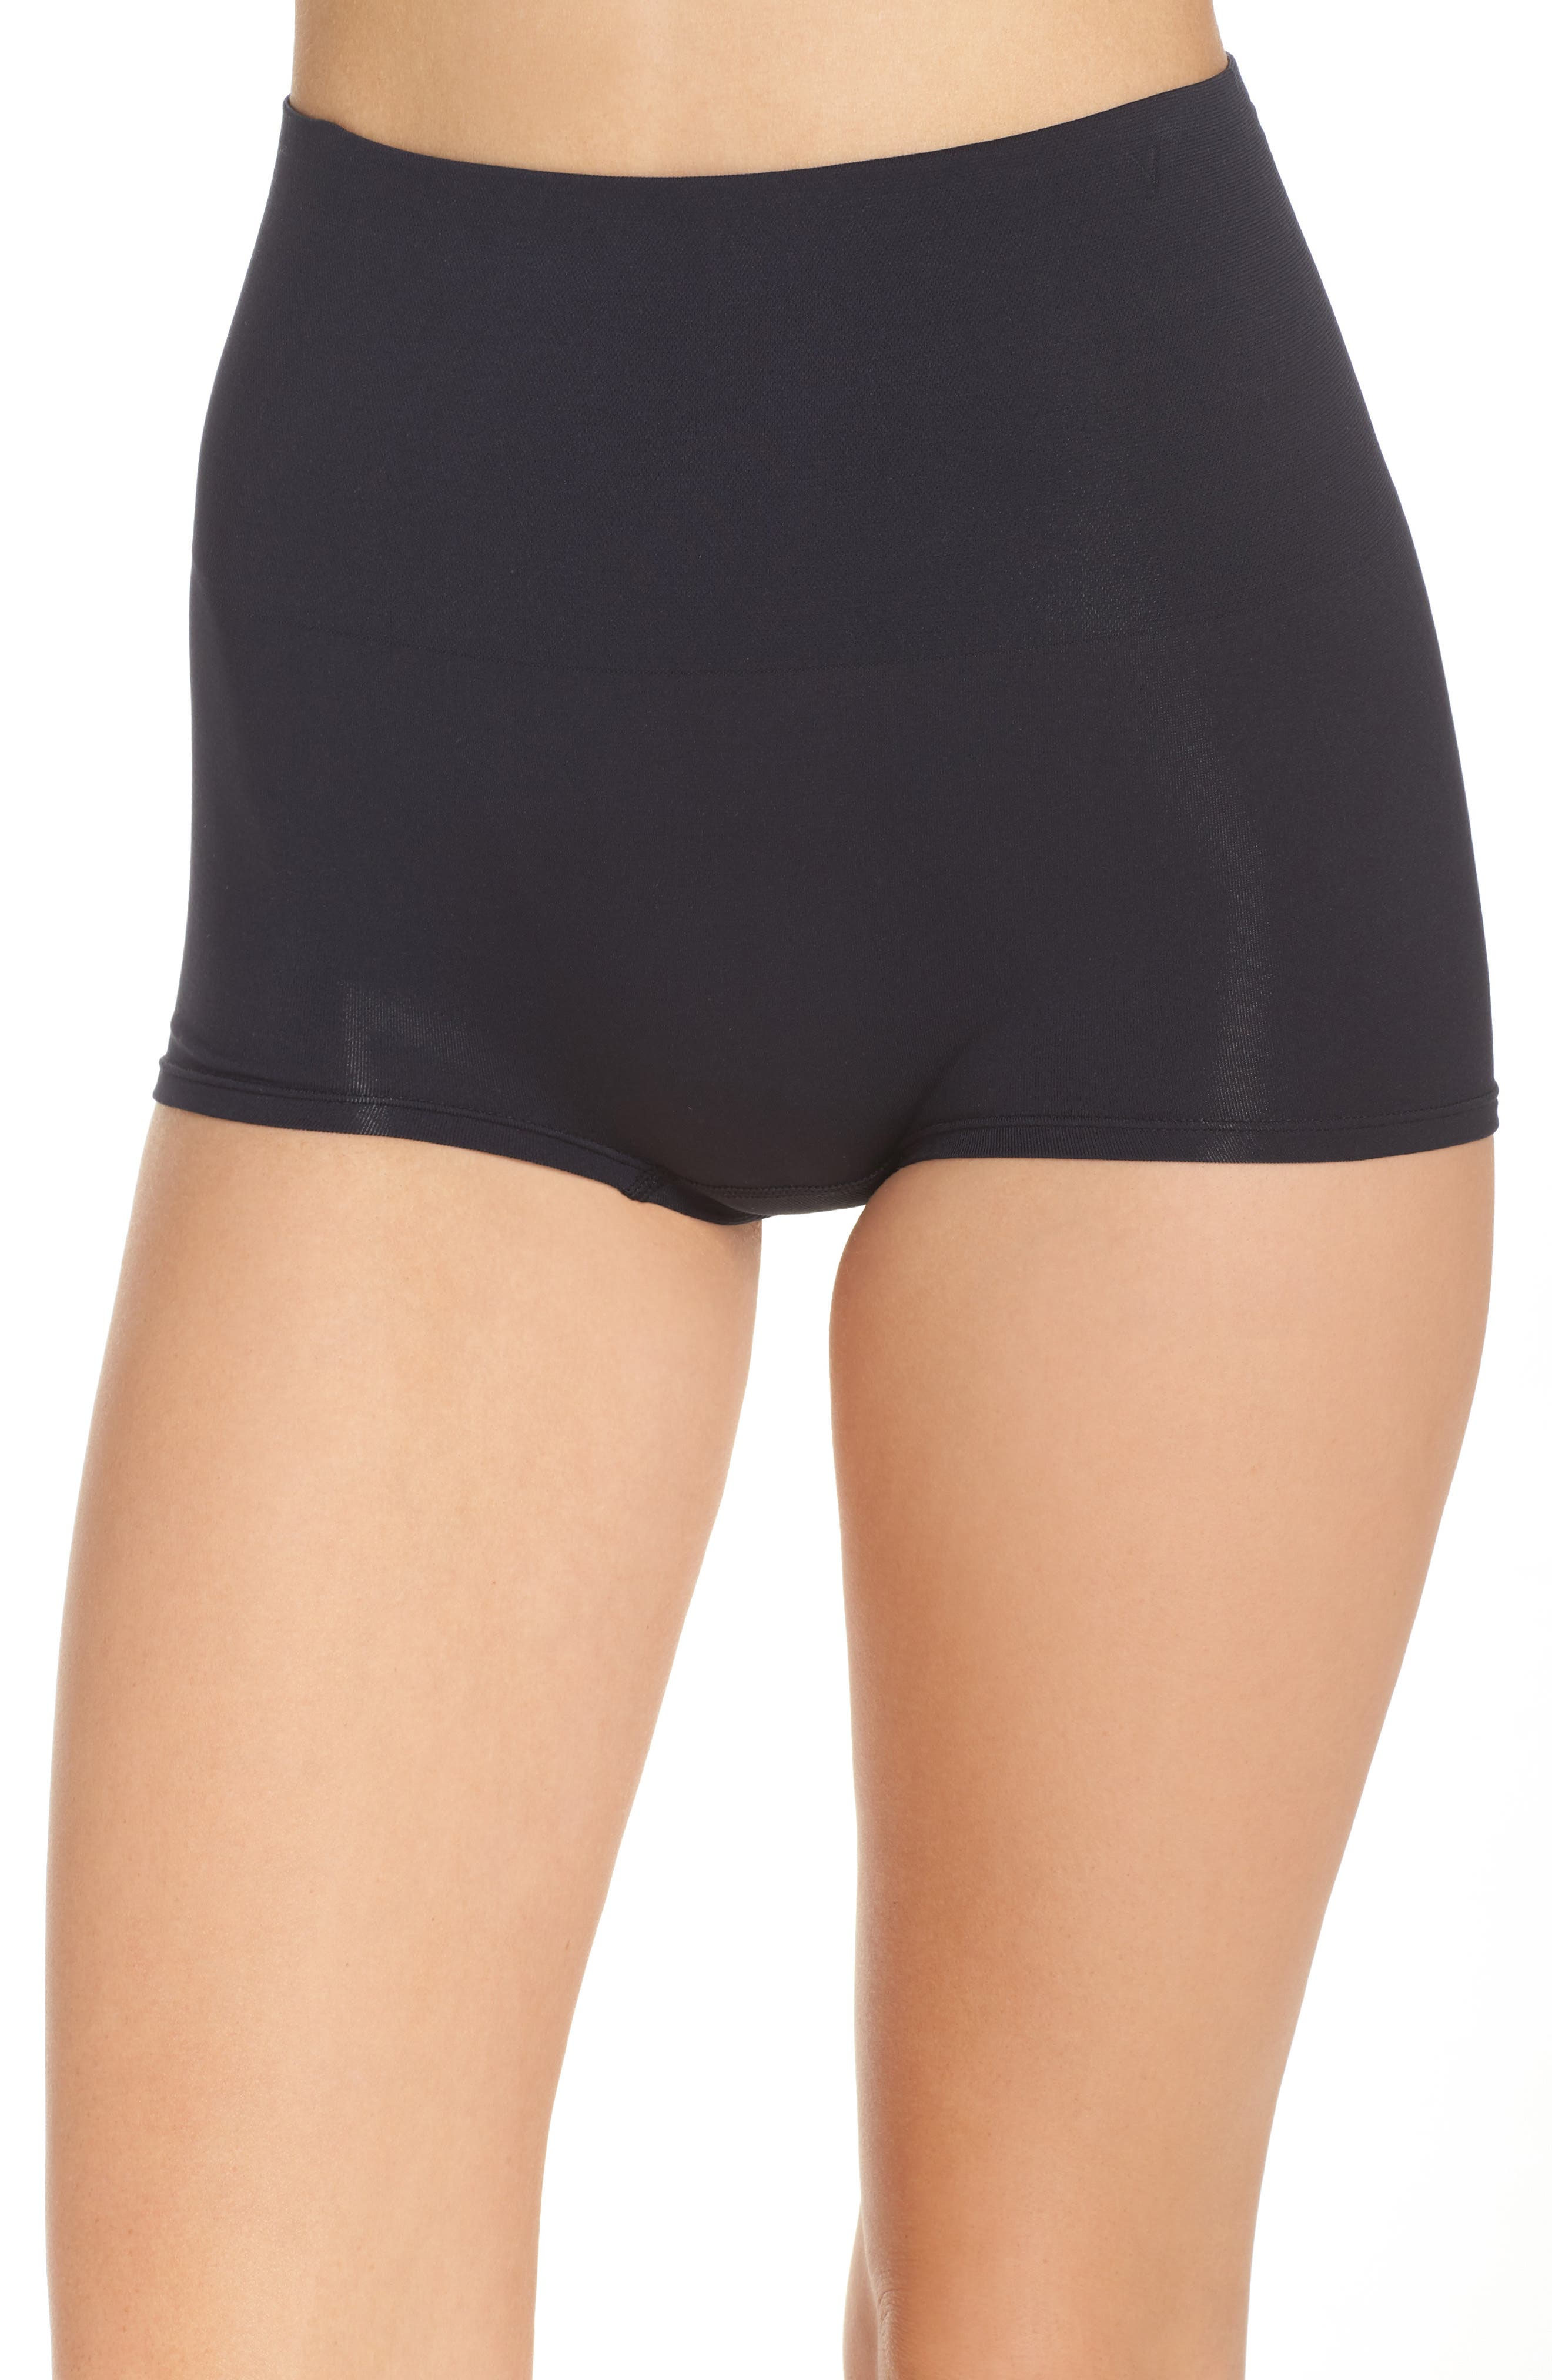 Yummie Ultralite Seamless Shaping Girlshorts